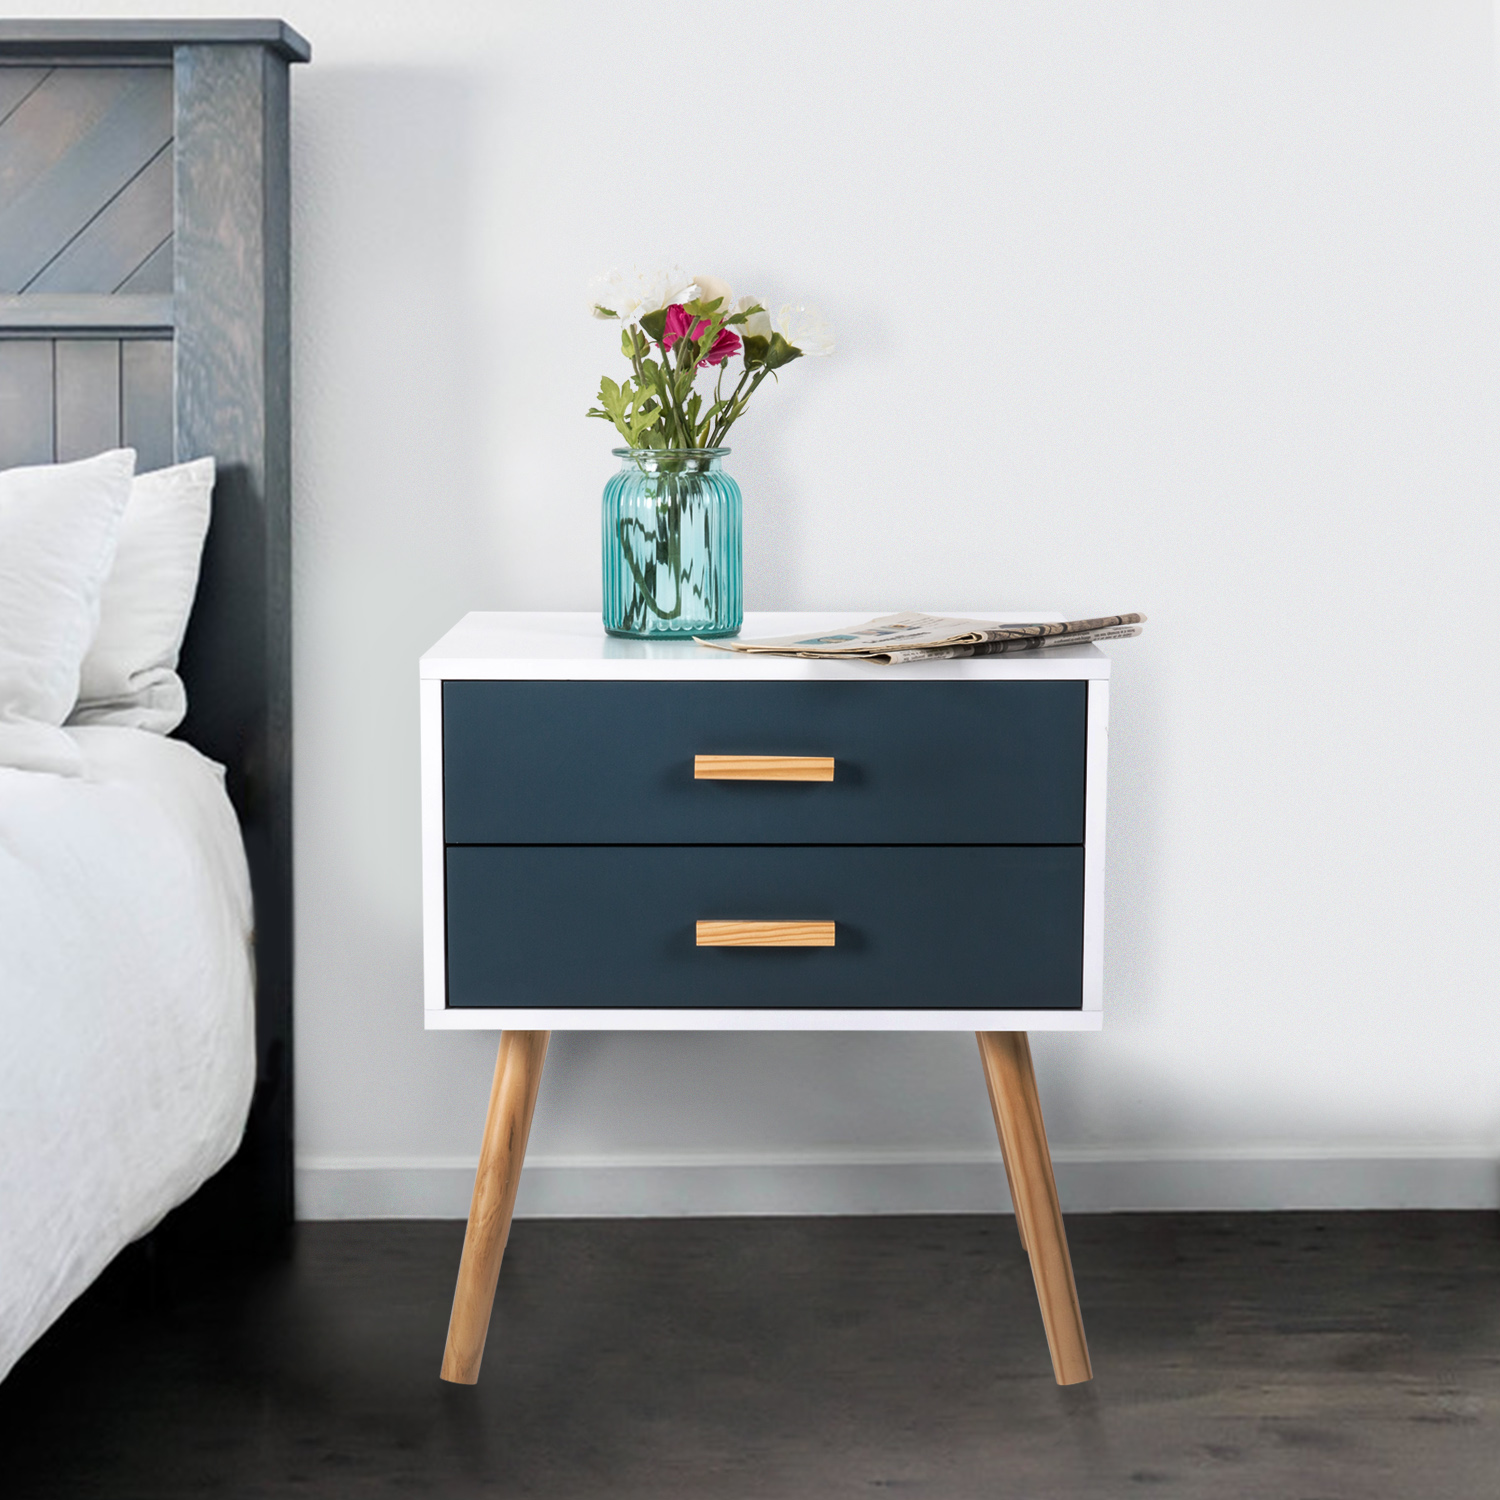 Kinbor Side End Table Nightstand Bedroom Living Room Table Cabinet With 2 Drawers Storage